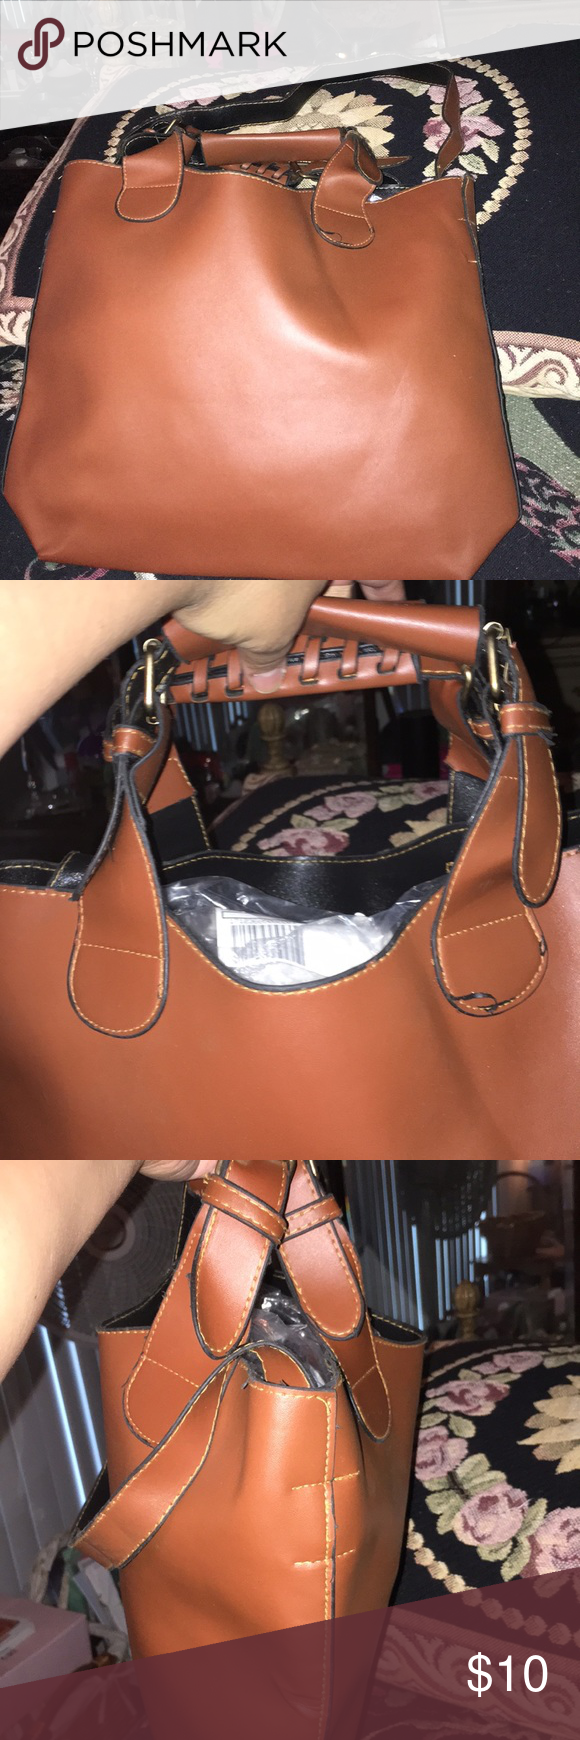 Designer Inspired Bag Purse Tote Hobo Satchel Faux Leather Removable